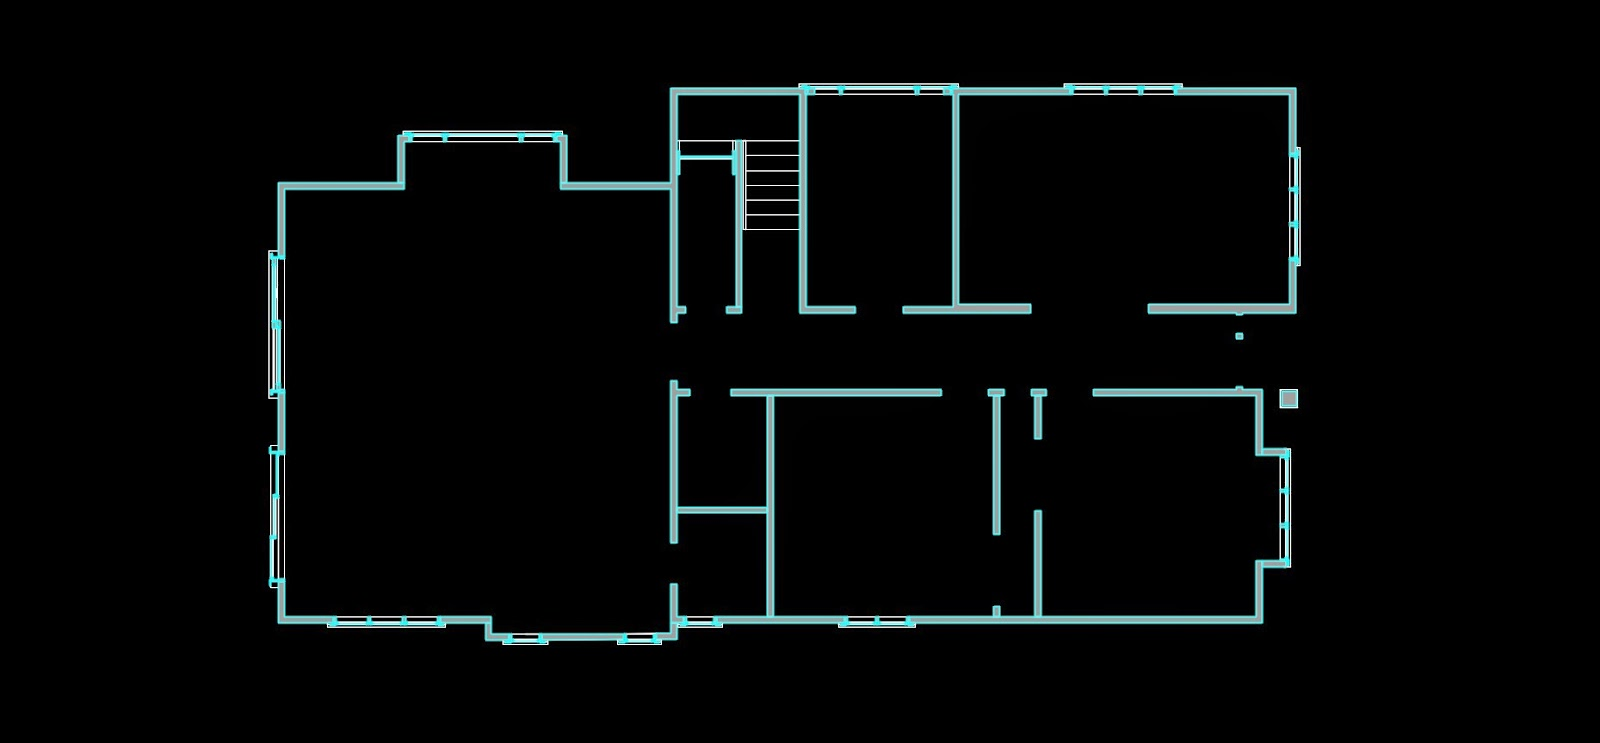 This is just a screen shot (built into Autocad but not revit-all my